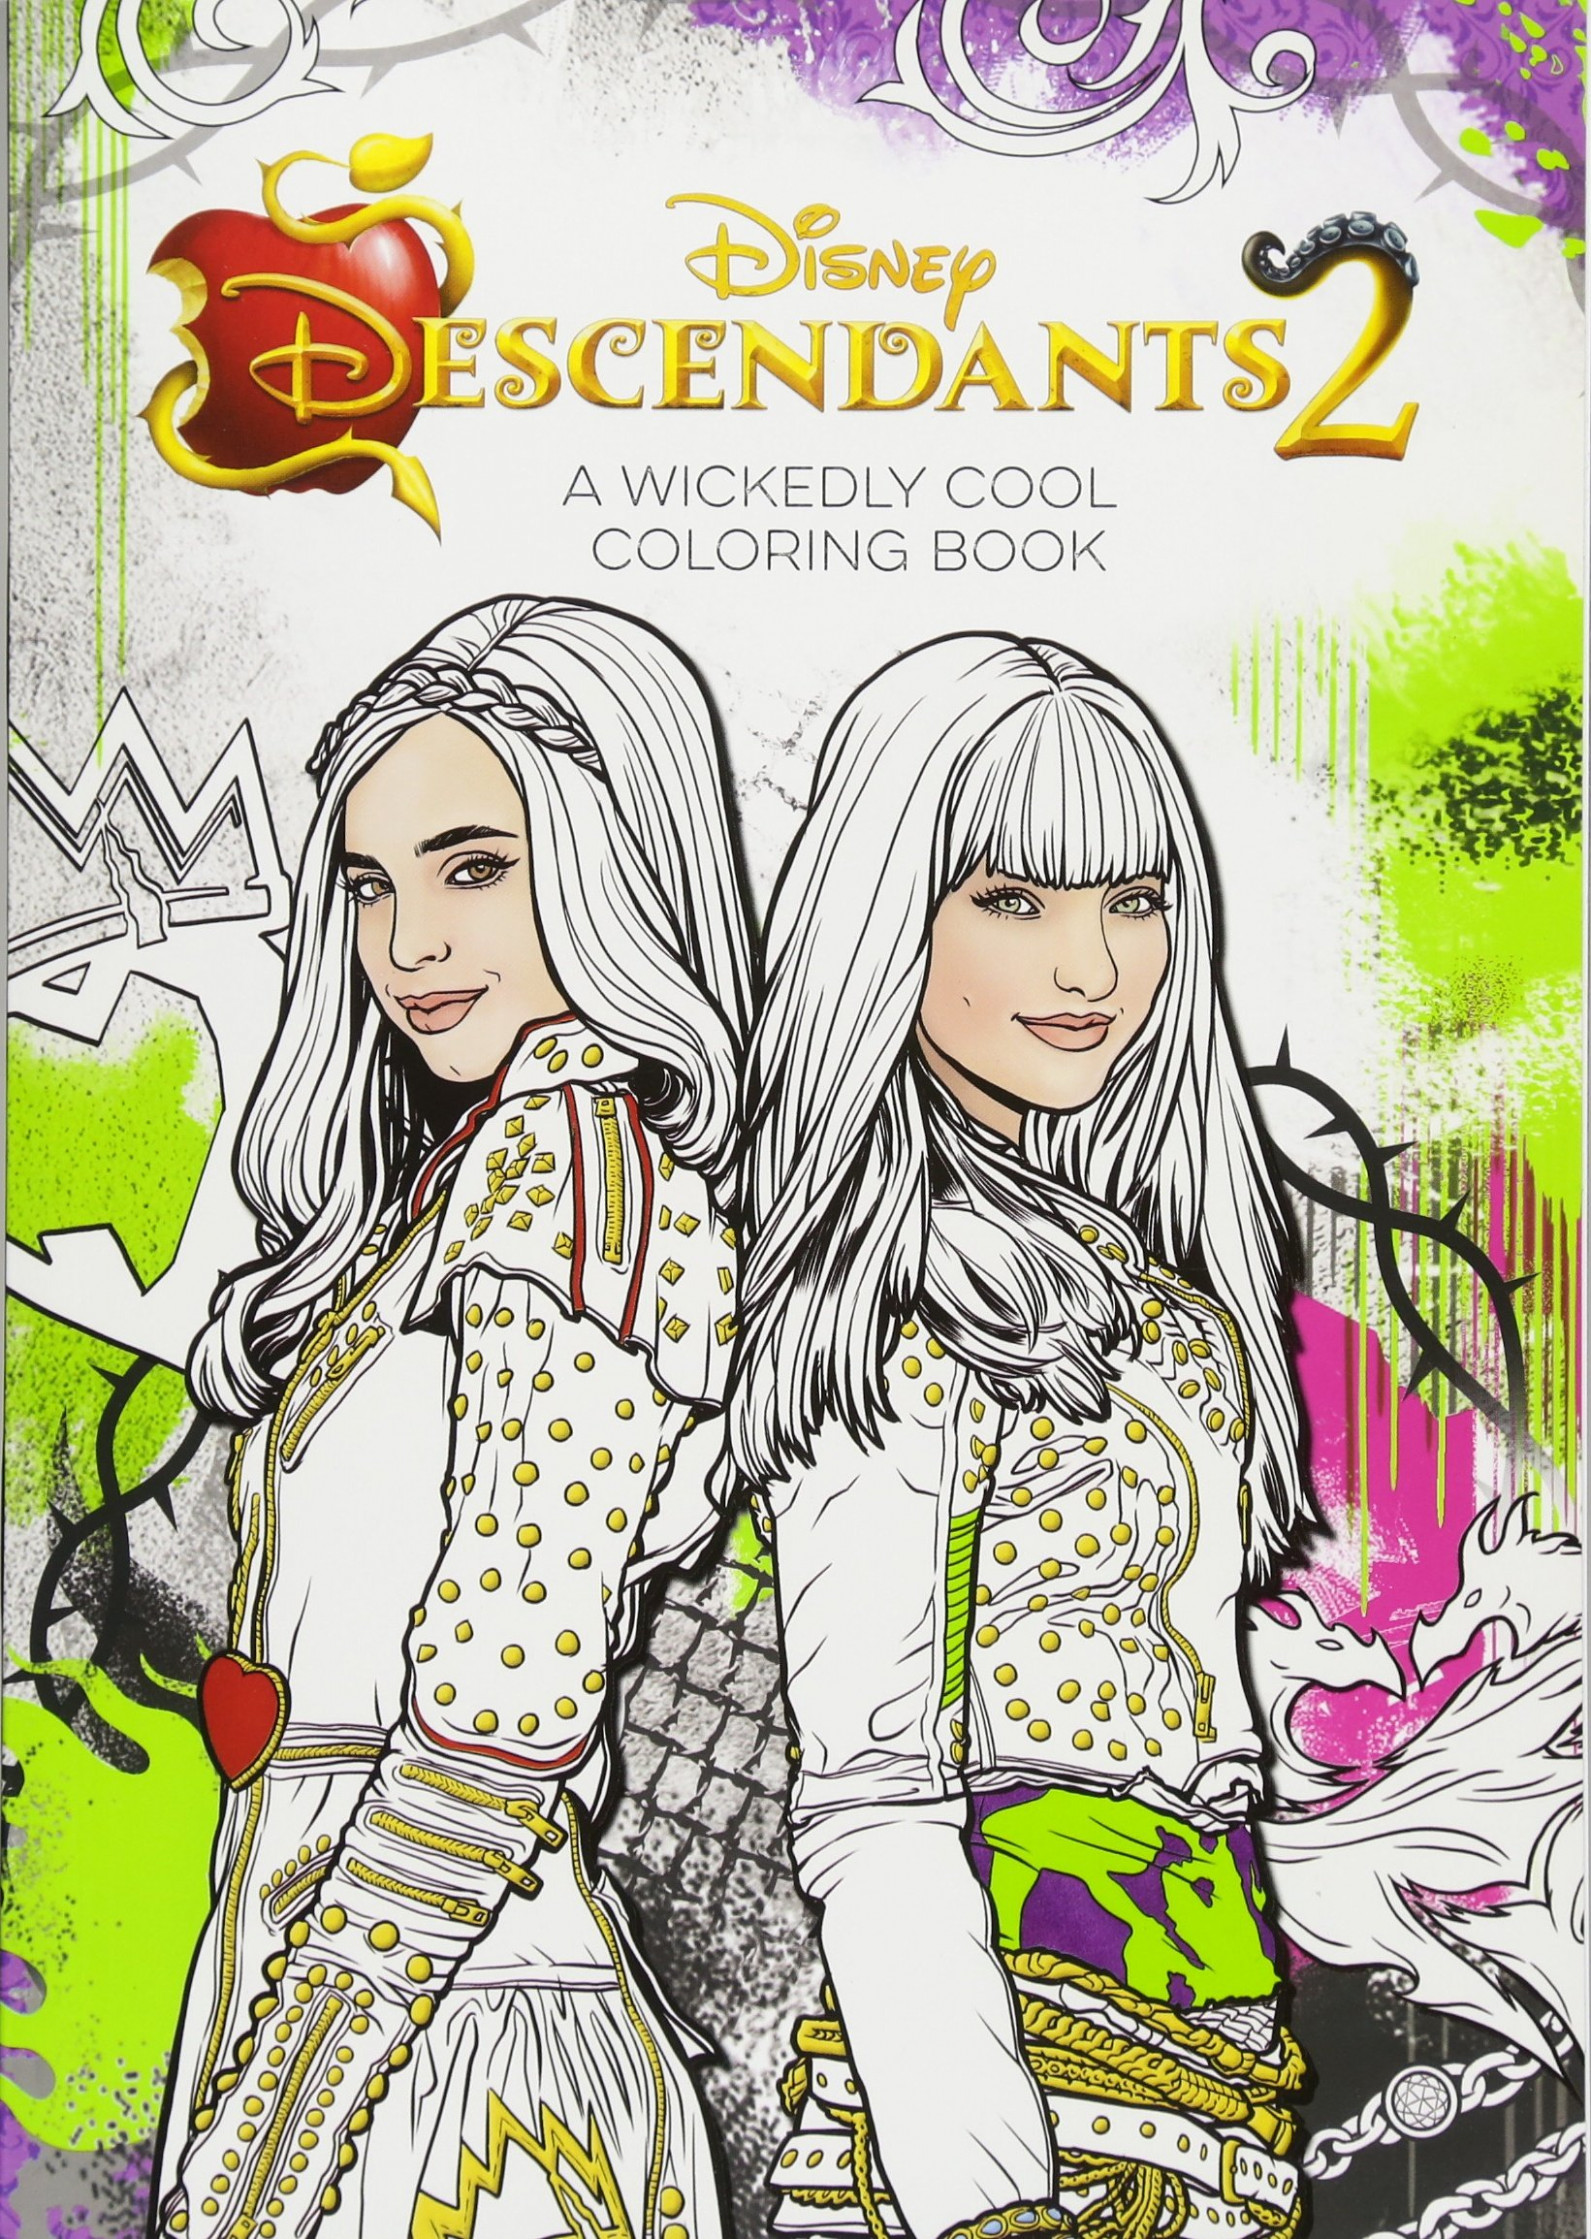 Descendants 19 A Wickedly Cool Coloring Book Art of Coloring: Amazon ...